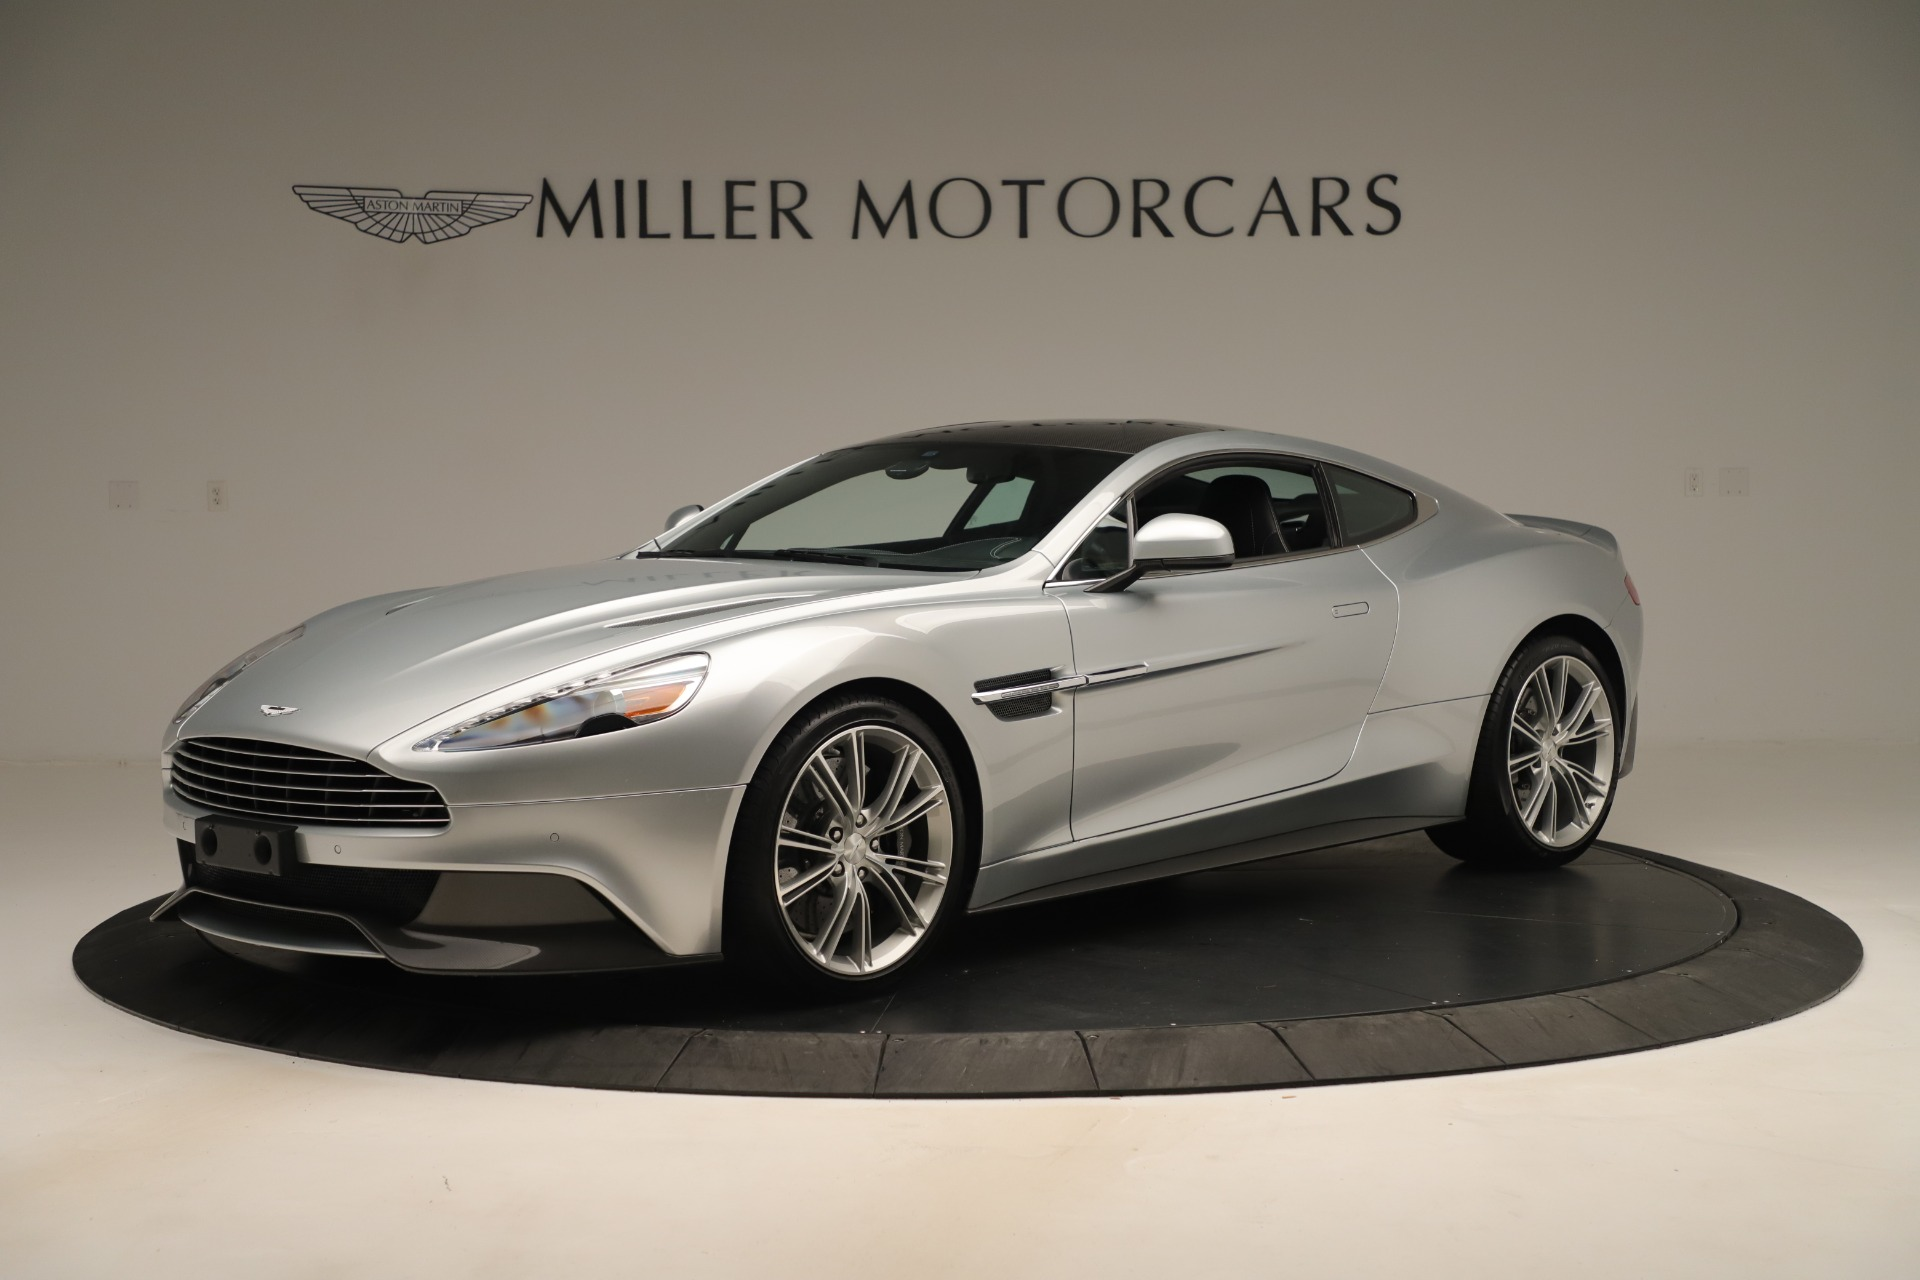 Used 2014 Aston Martin Vanquish Coupe for sale $116,900 at Pagani of Greenwich in Greenwich CT 06830 1